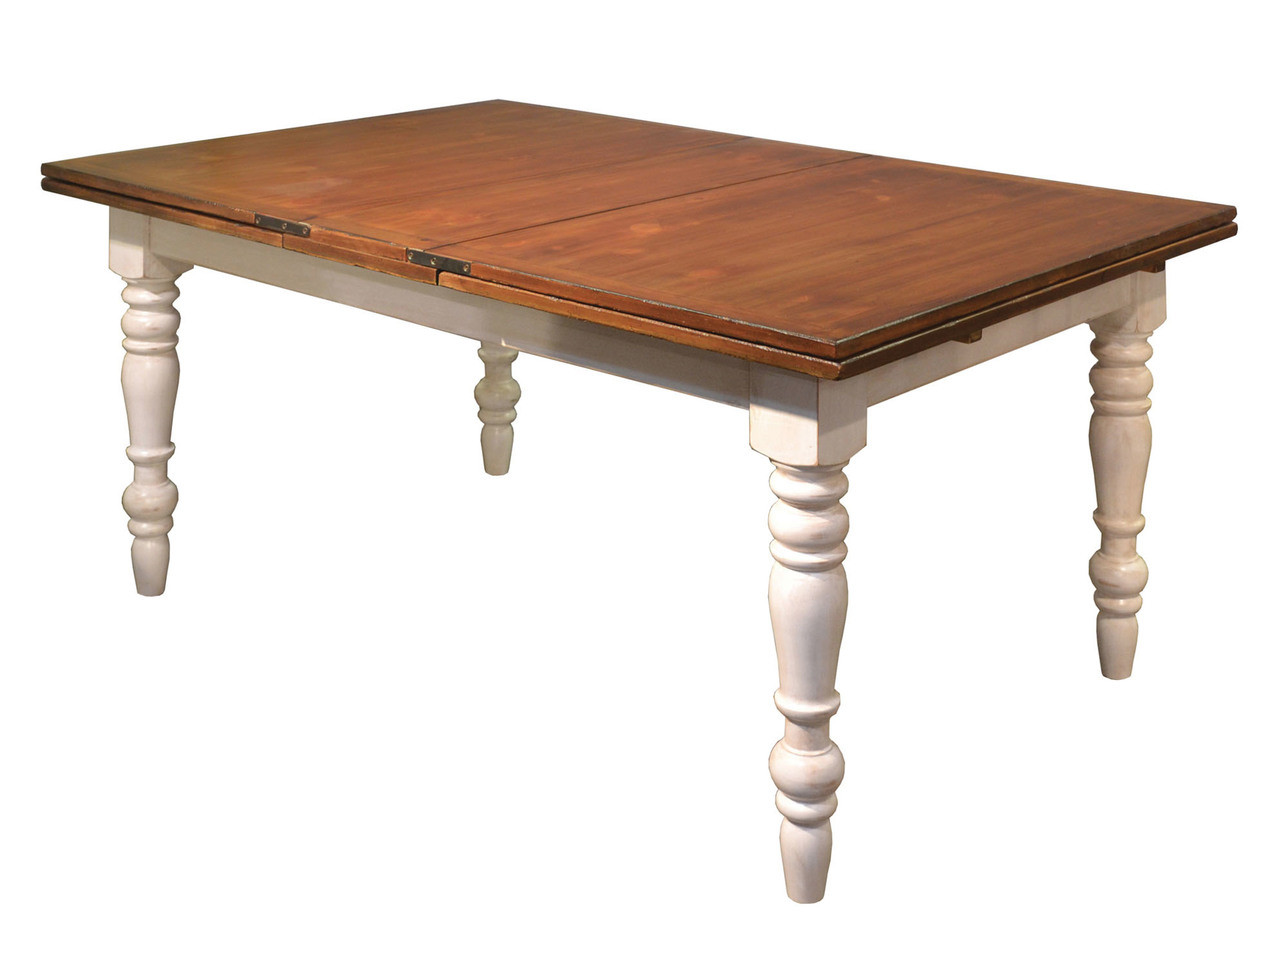 Claremont Butterfly Extension Dining Table Image 1